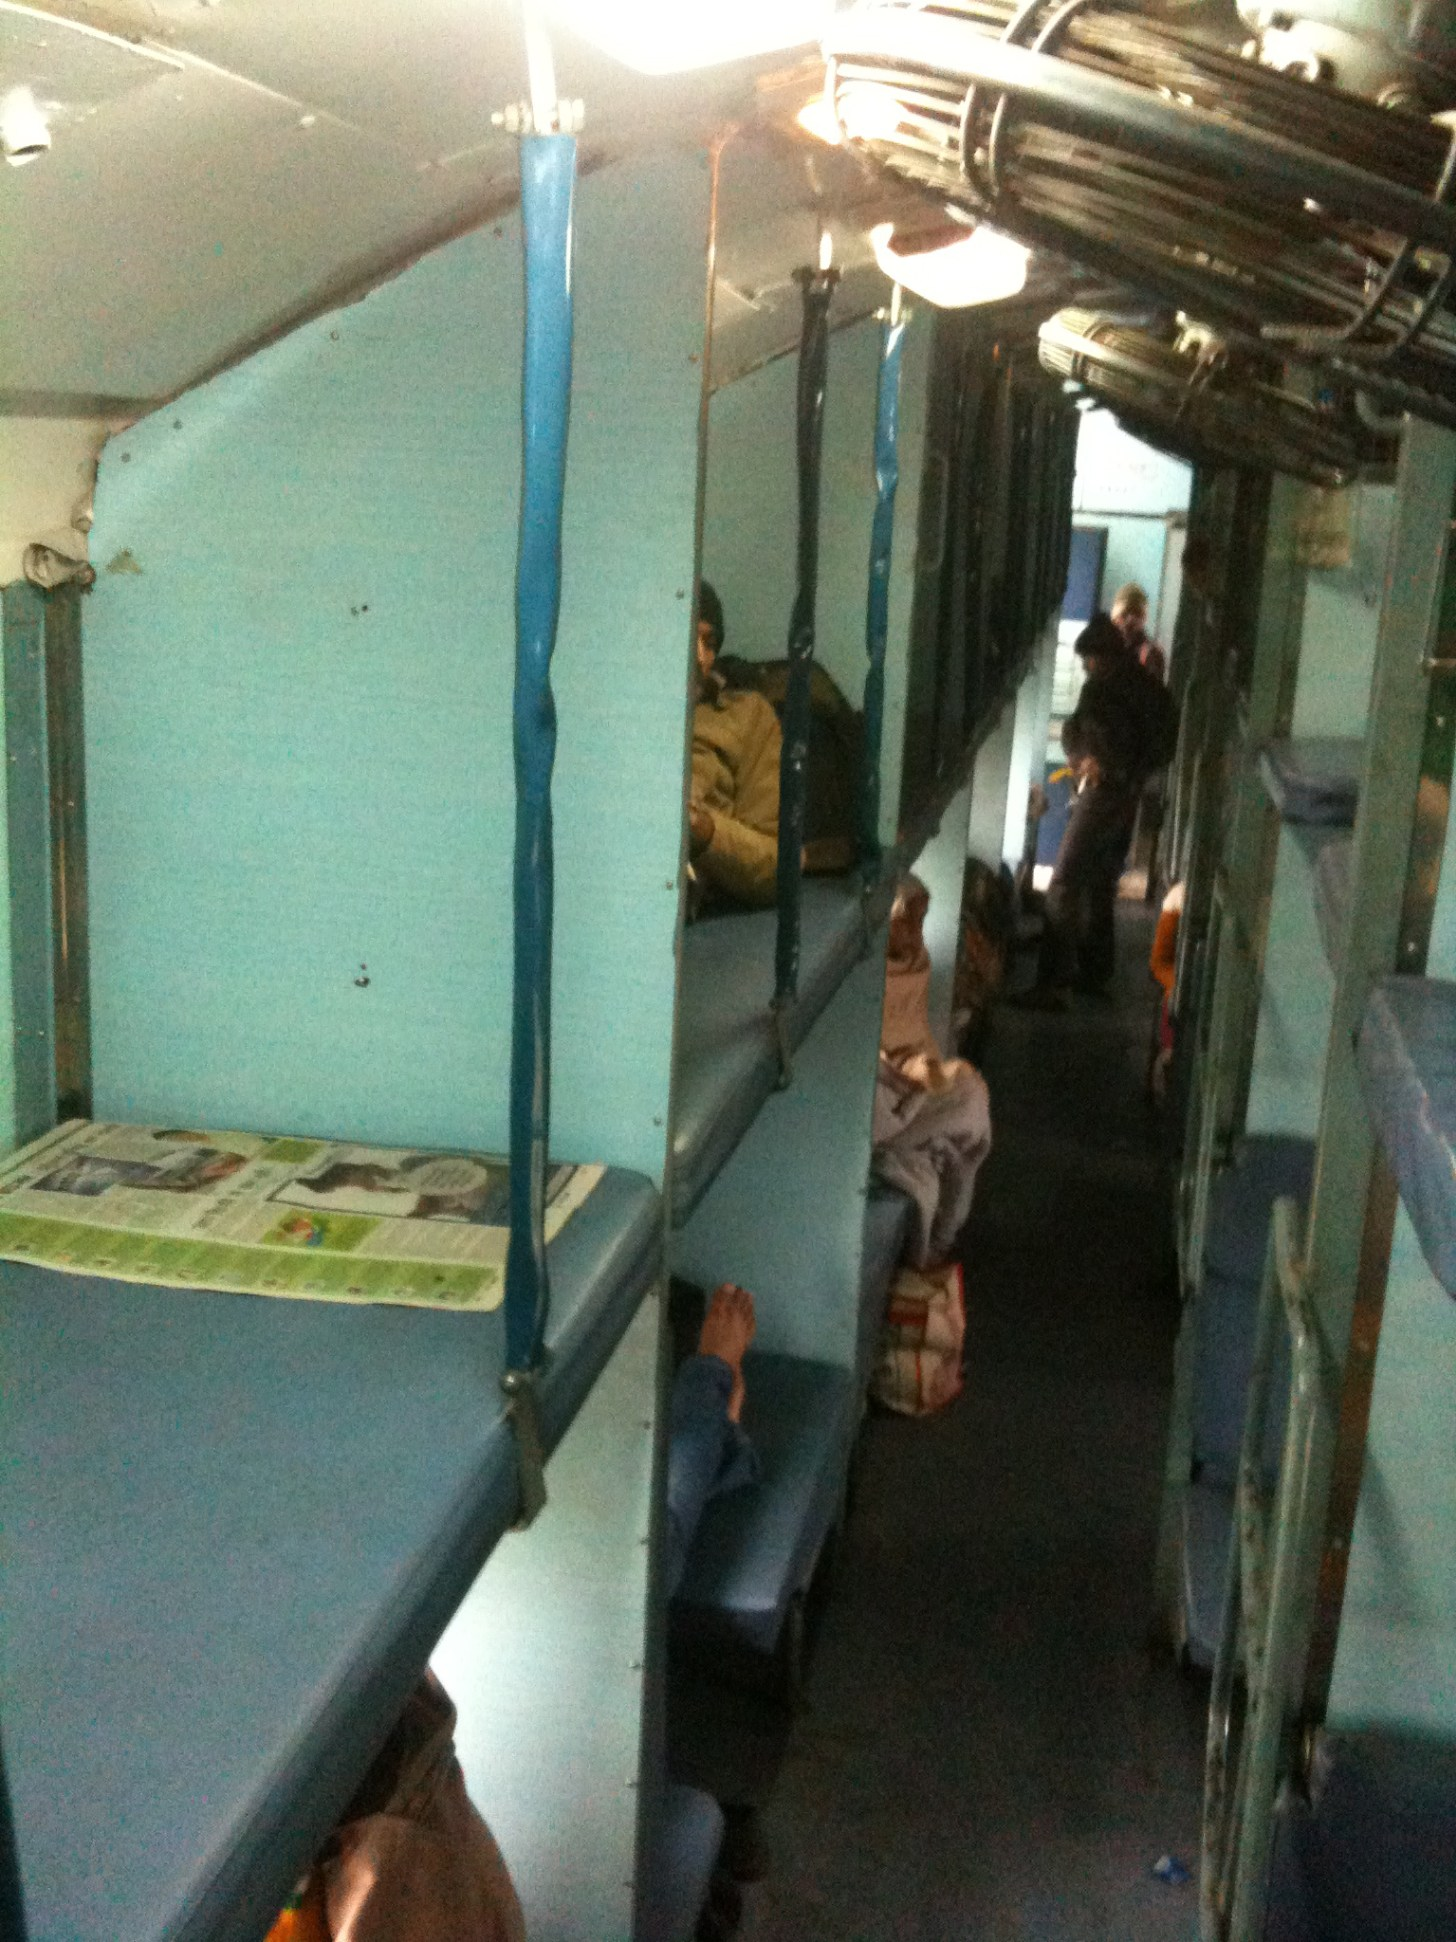 INDIA - Second class sleeper train.Pay the extra and book a First class ticket if you are on your own!